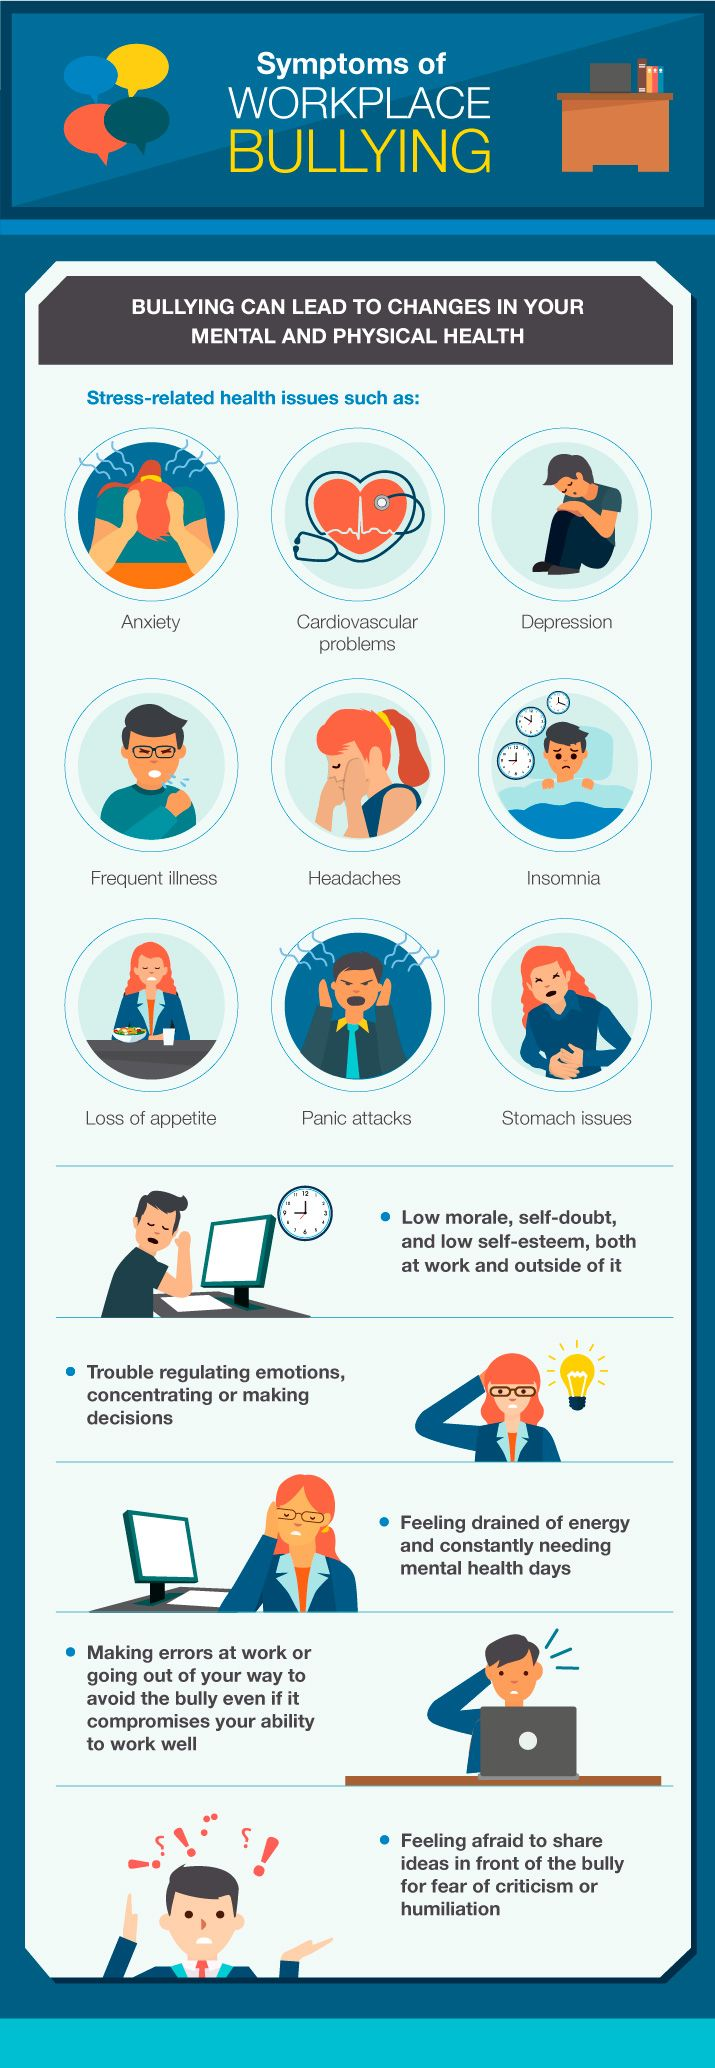 Symptoms of workplace bullying